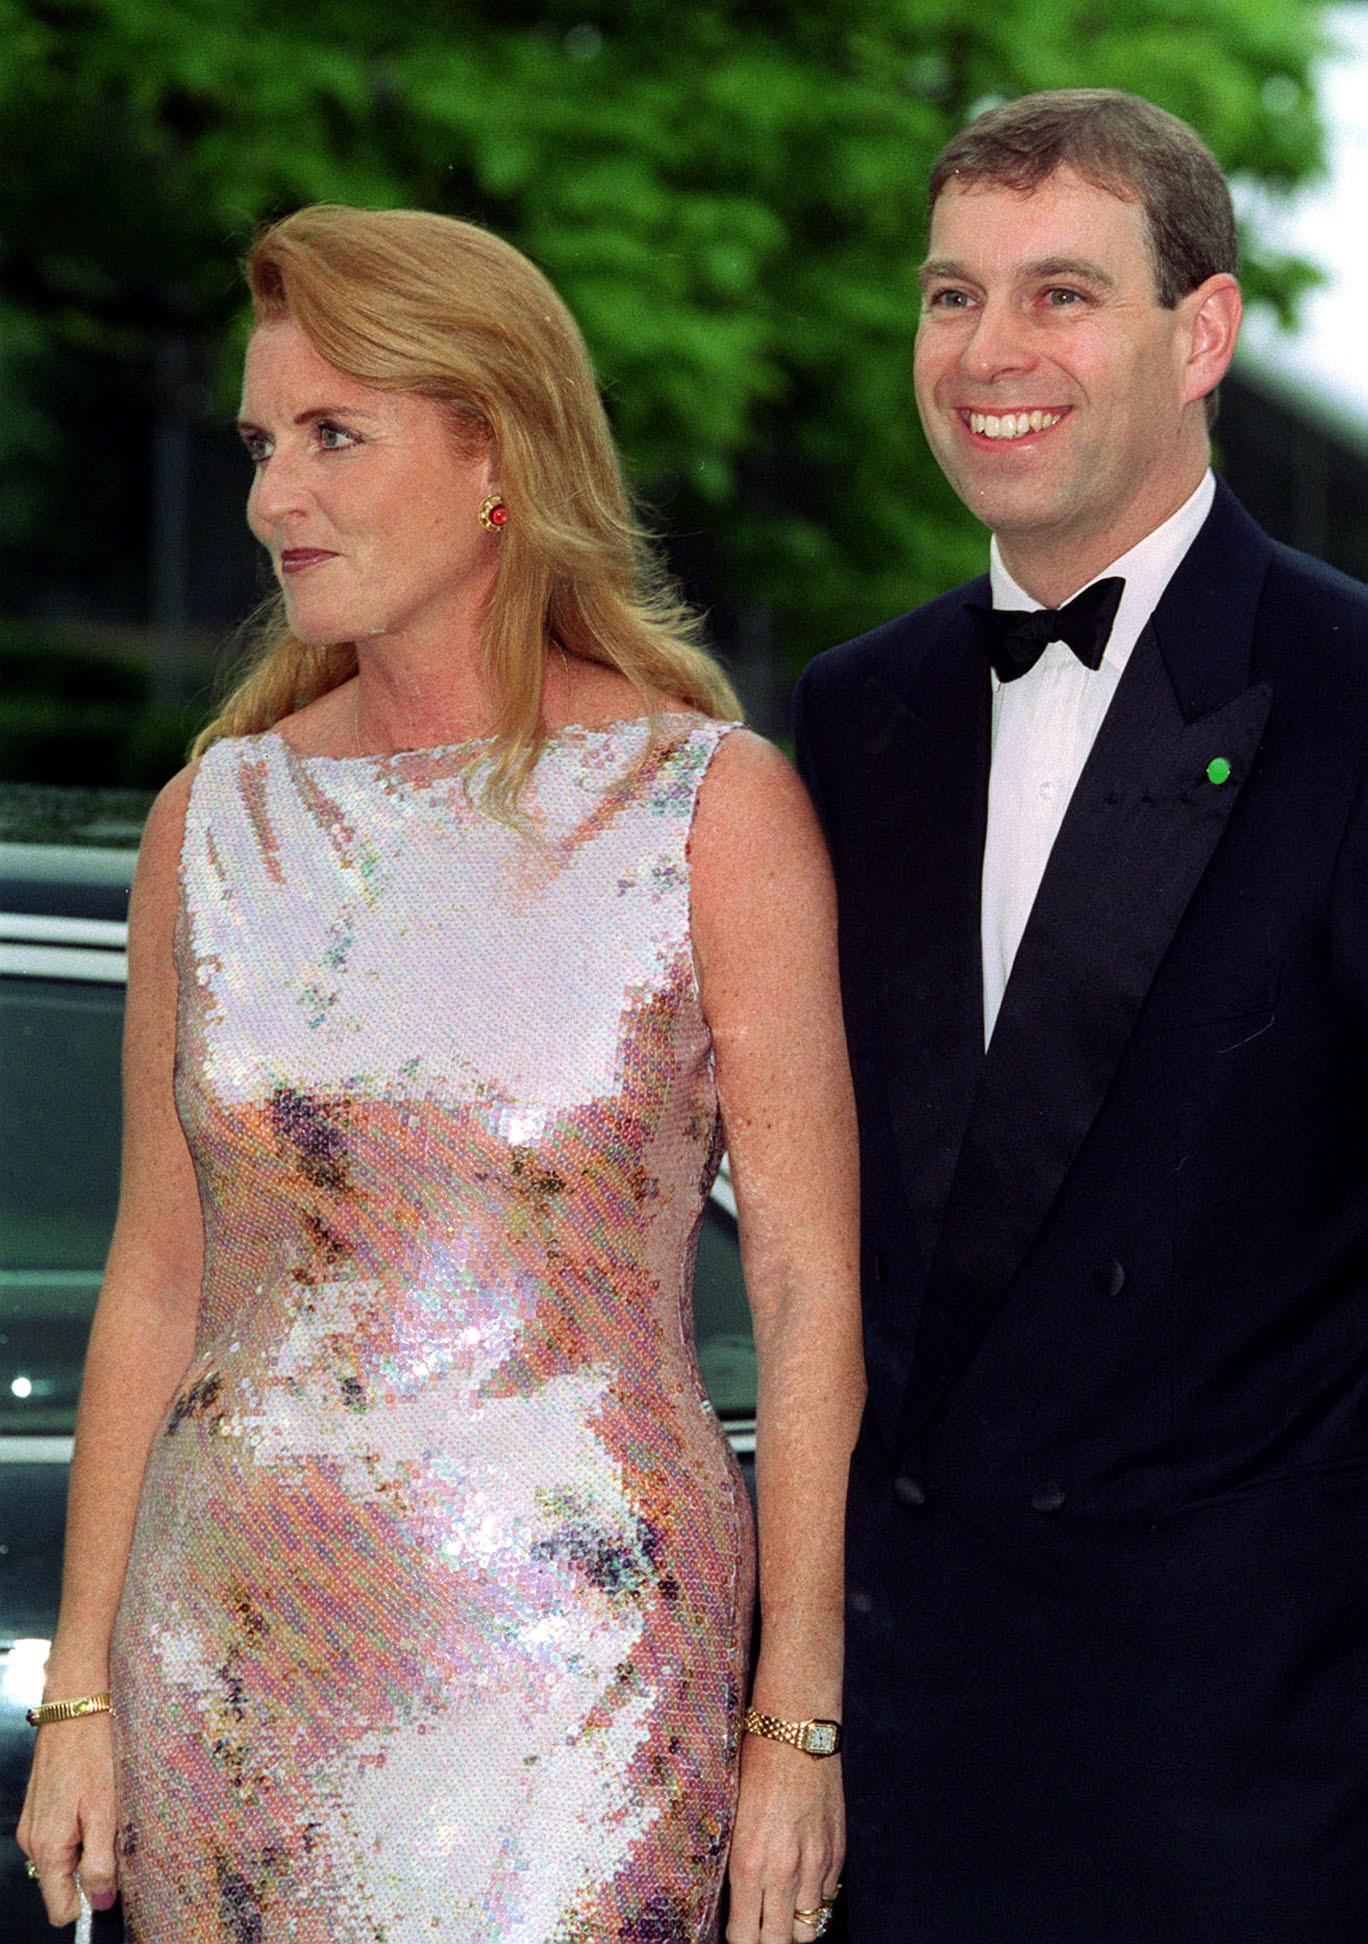 The Duke and Duchess of York arriving at the Serpentine Gallery 30th Anniversary Gala Dinner, in London.  The Duchess is wearing a dress by Ben de Lisi.